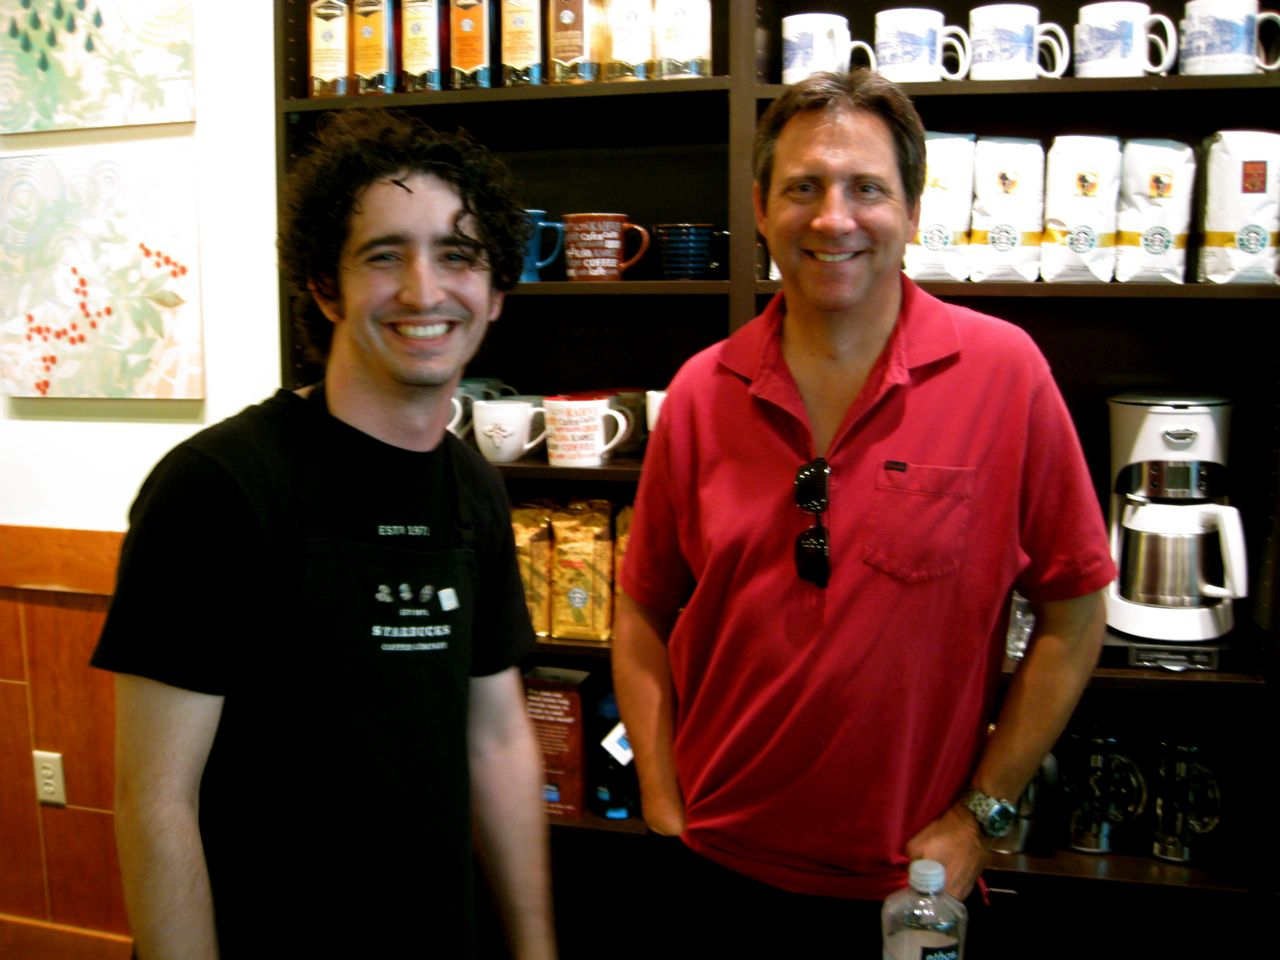 Coffee cupping at starbucks coffee shop journal Starbucks palm beach gardens